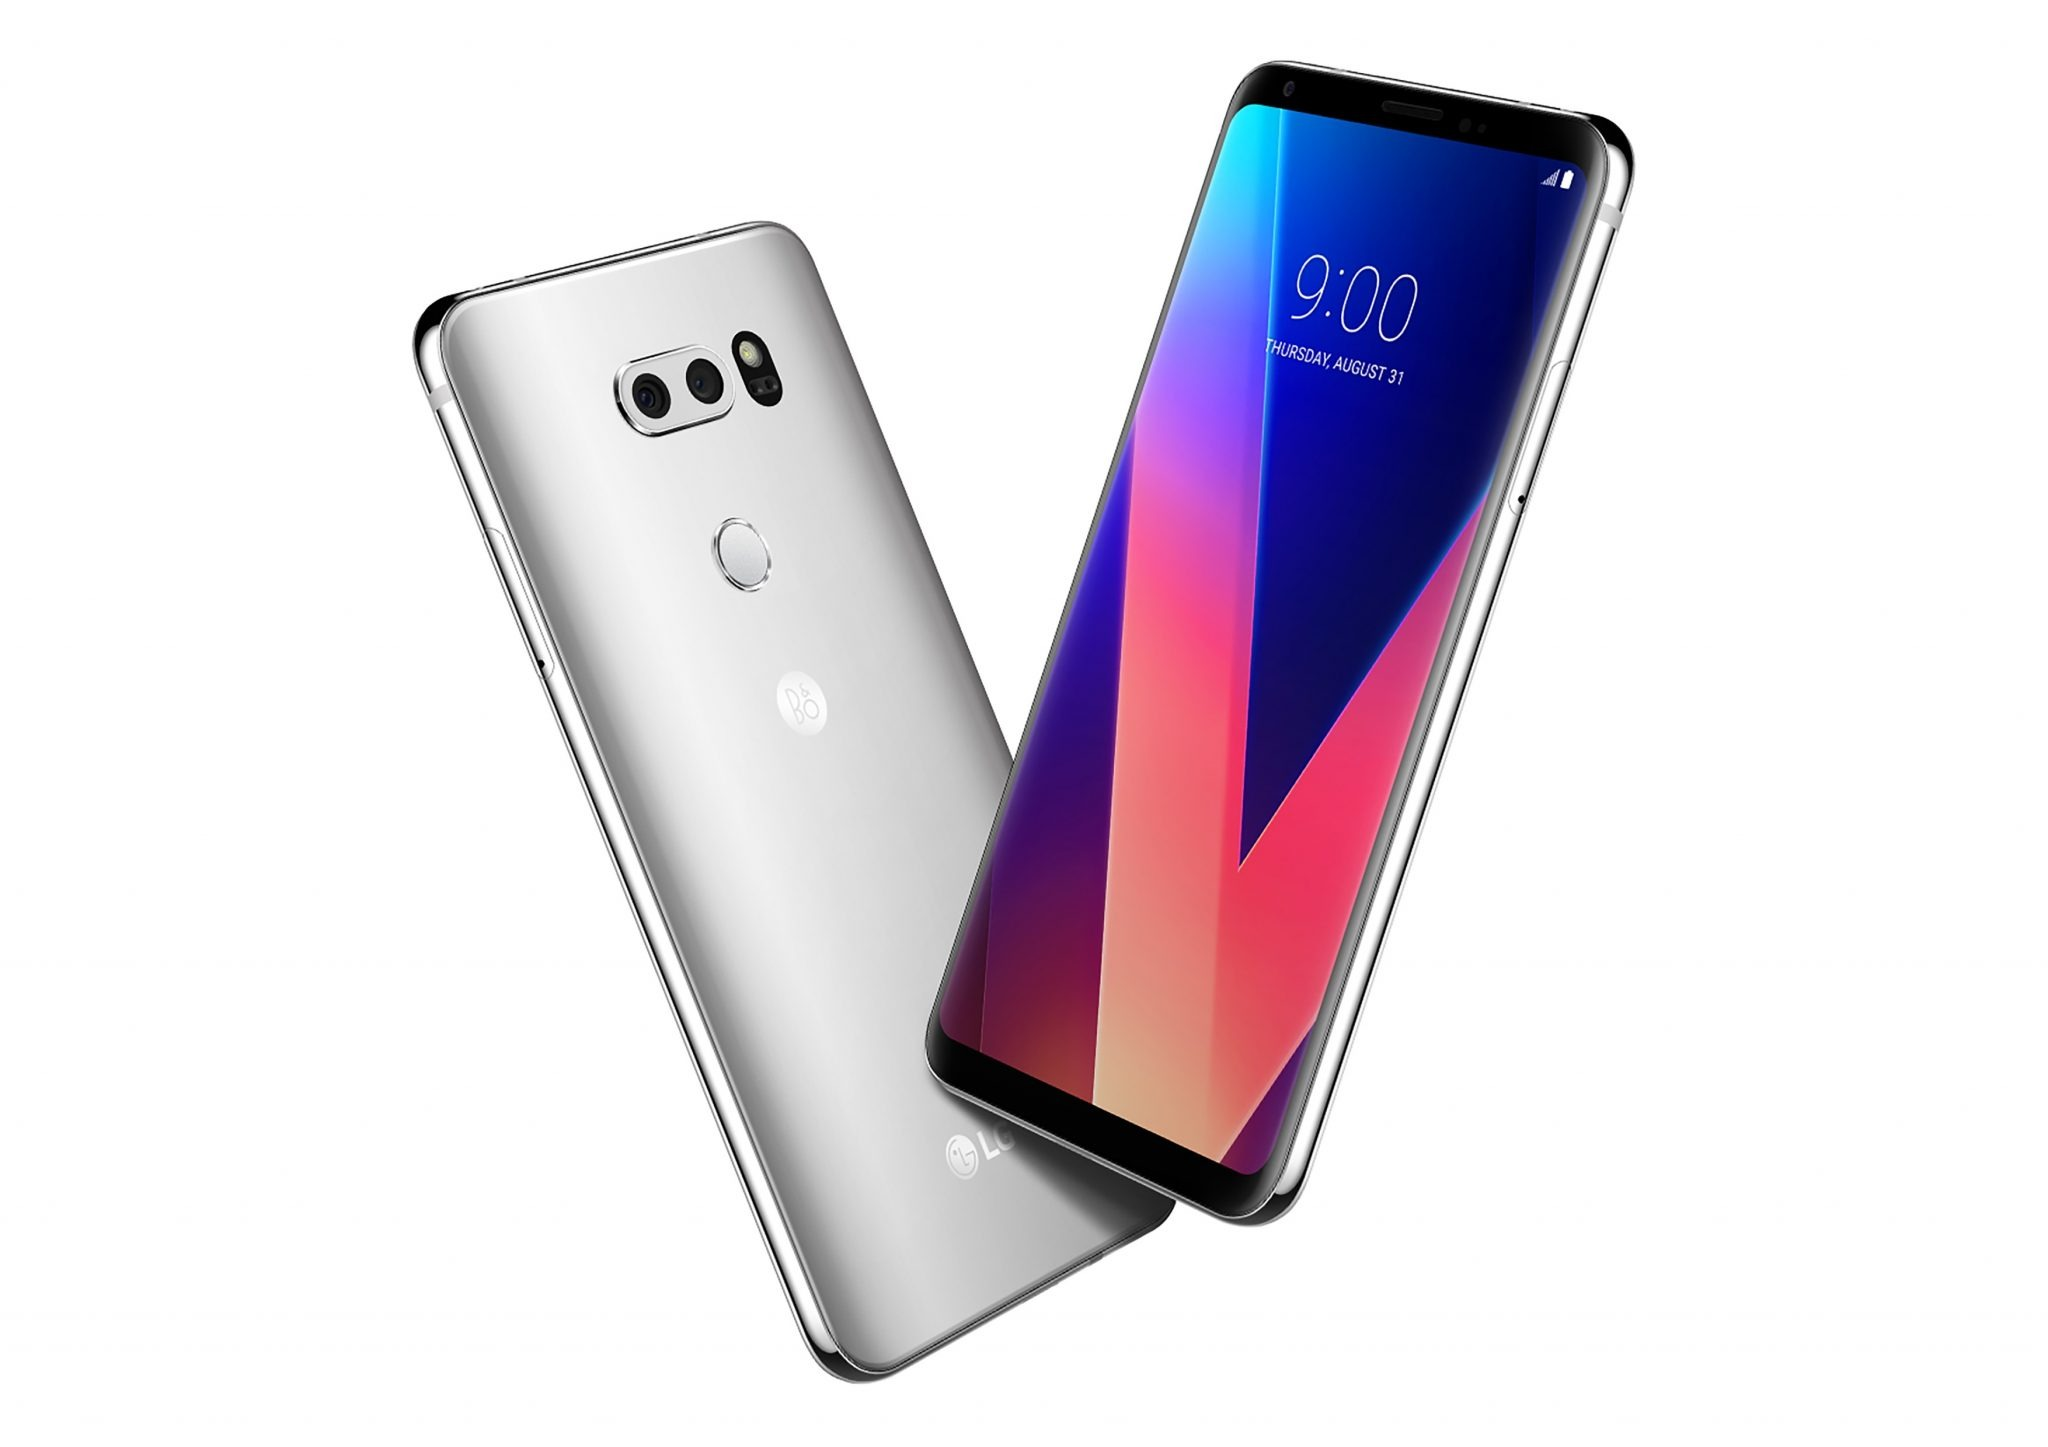 [OFFICIAL] Download the LG V30 Wallpapers in High Quality - ZIP File Included 1